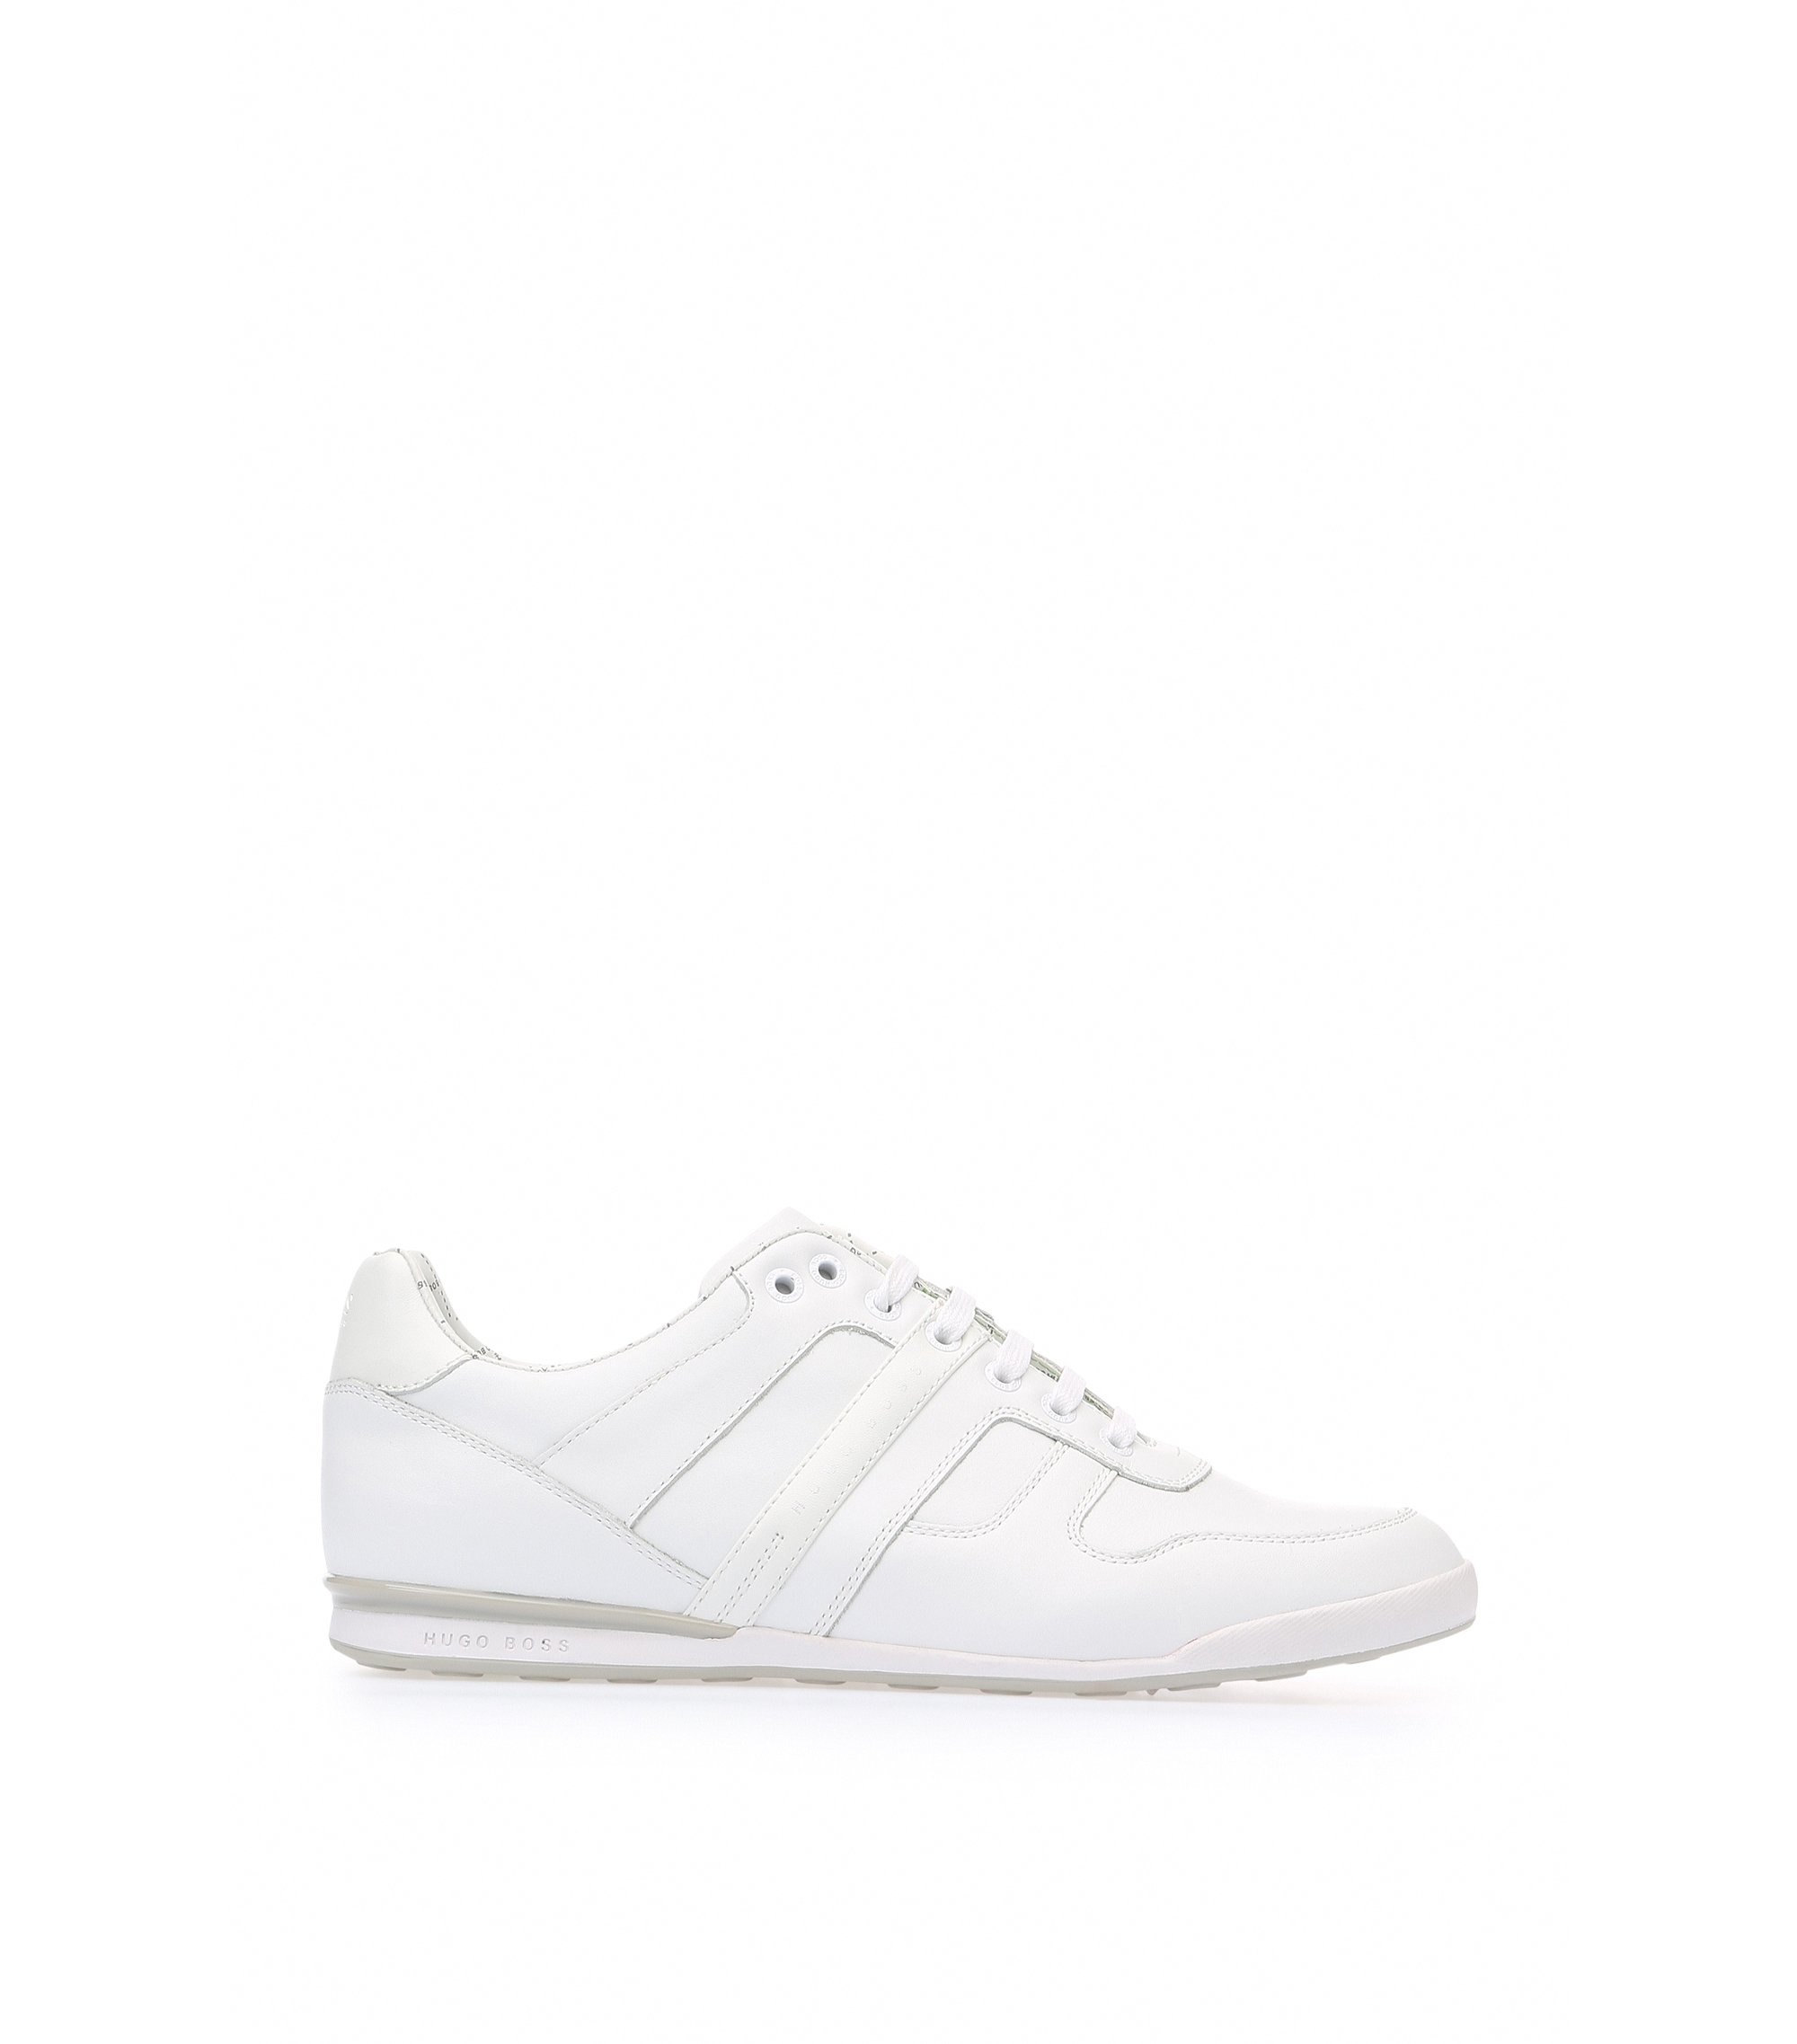 Leather Sneaker | Arkansas Lowp It, White